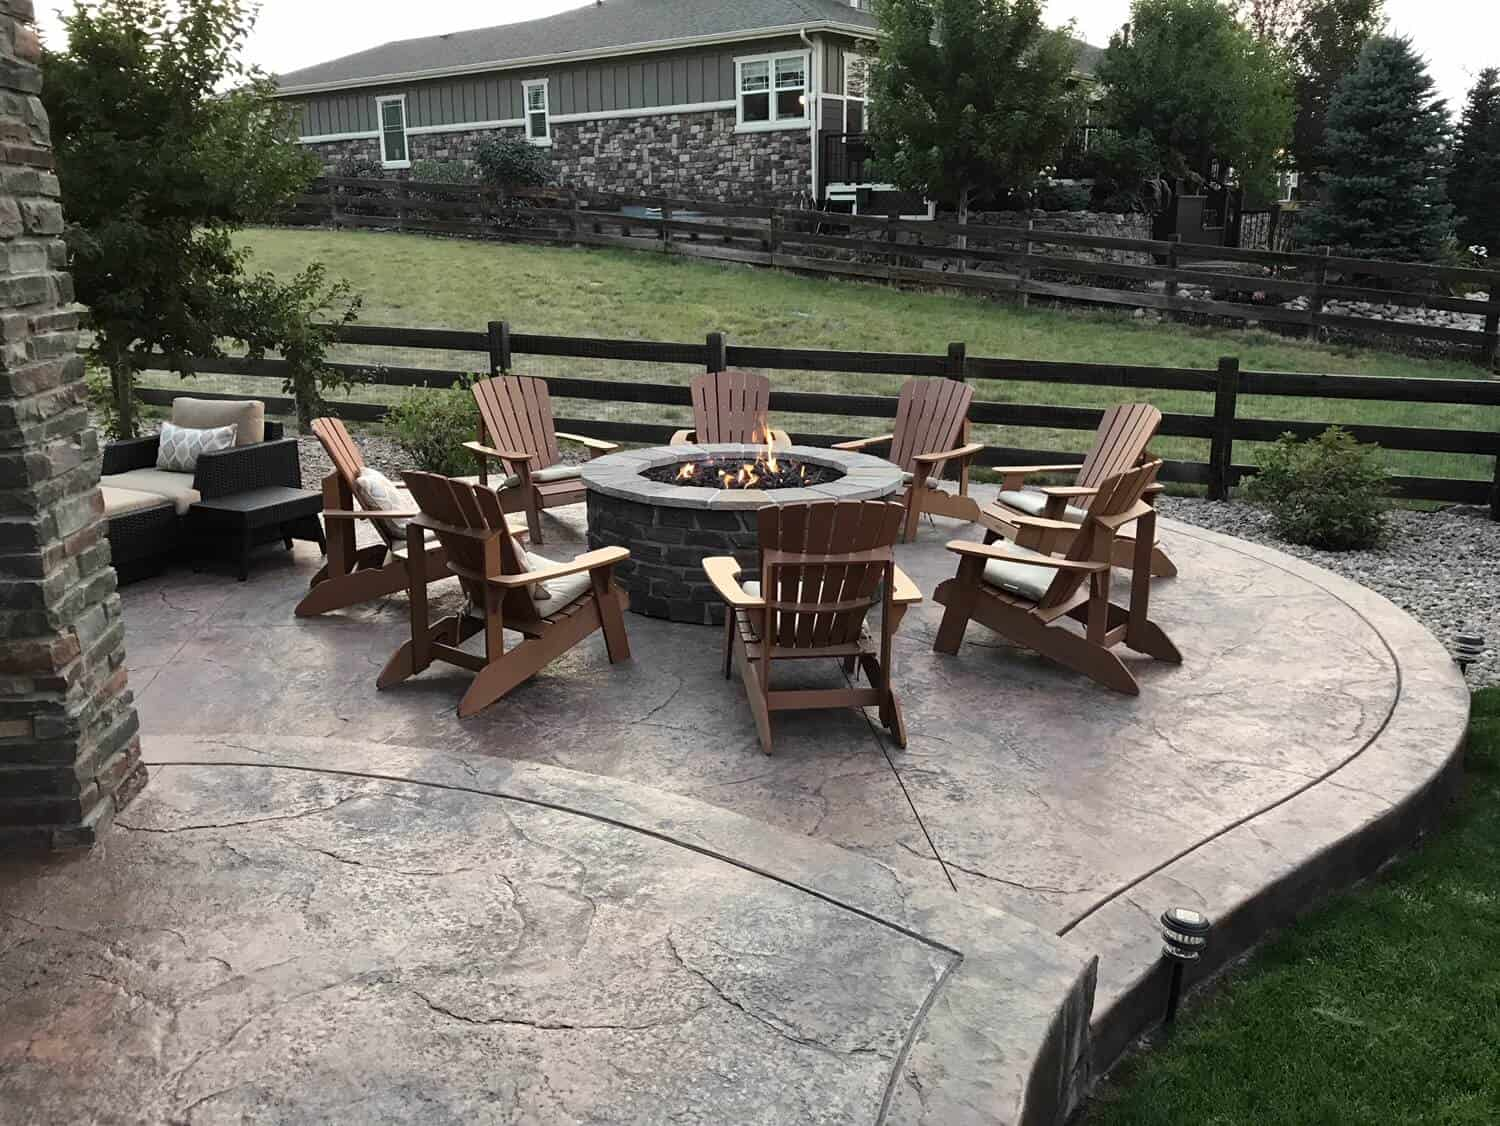 Fire Pit with Lounging Chairs